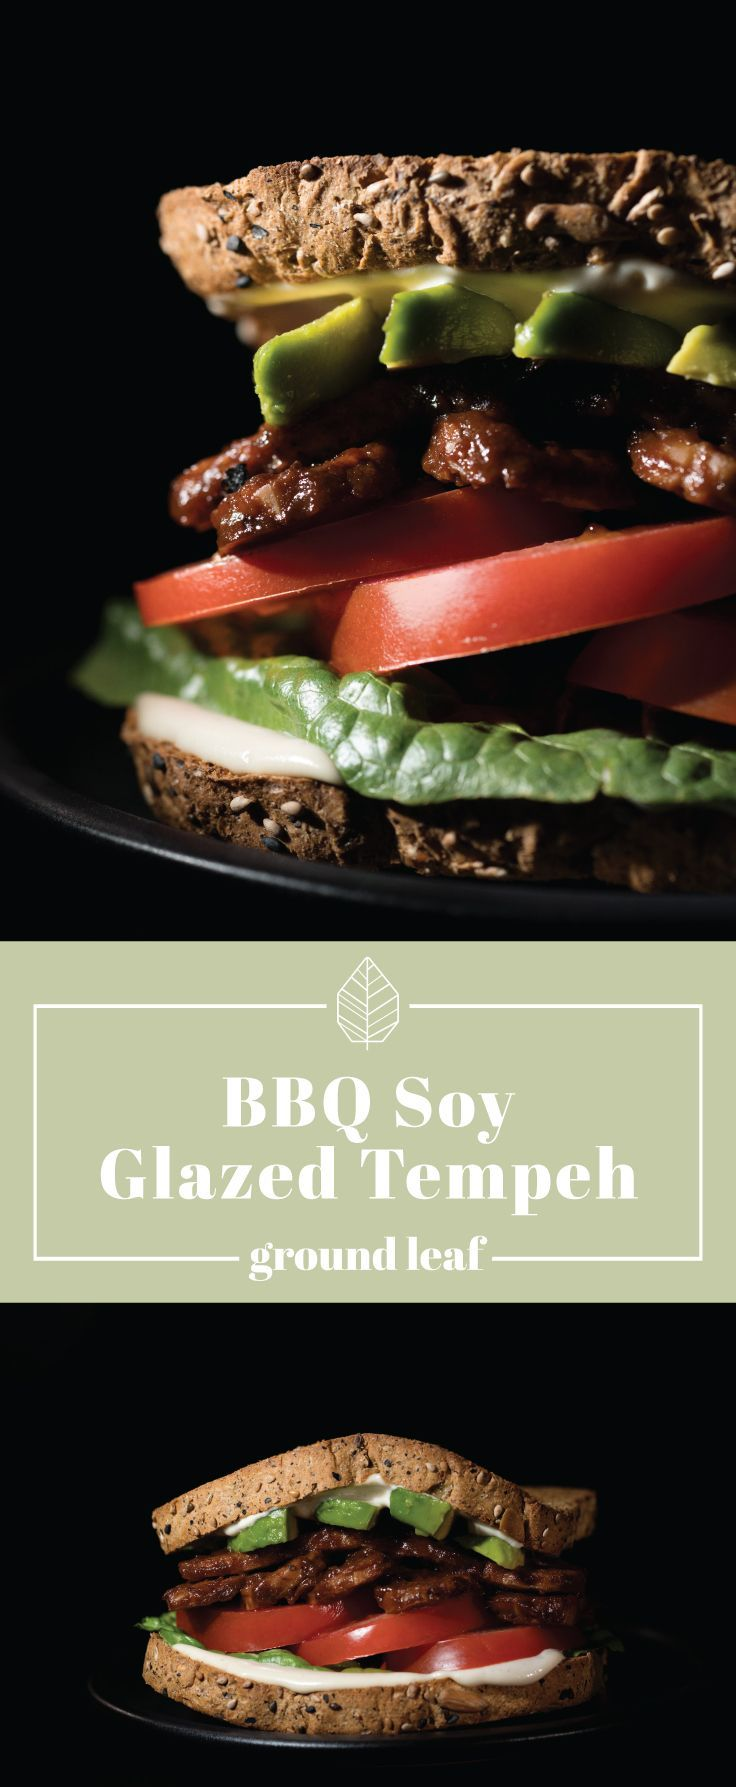 BBQ Soy Glazed Tempeh | Barbecue soy glazed tempeh is a healthy, mouthwatering spin on a summer tradition. Kick the flavor up a notch with this delicious vegan tempeh sandwich for the whole family to enjoy. tempeh recipes, tempeh recipes vegan, barbecue tempeh, bbq tempeh, vegan recipes